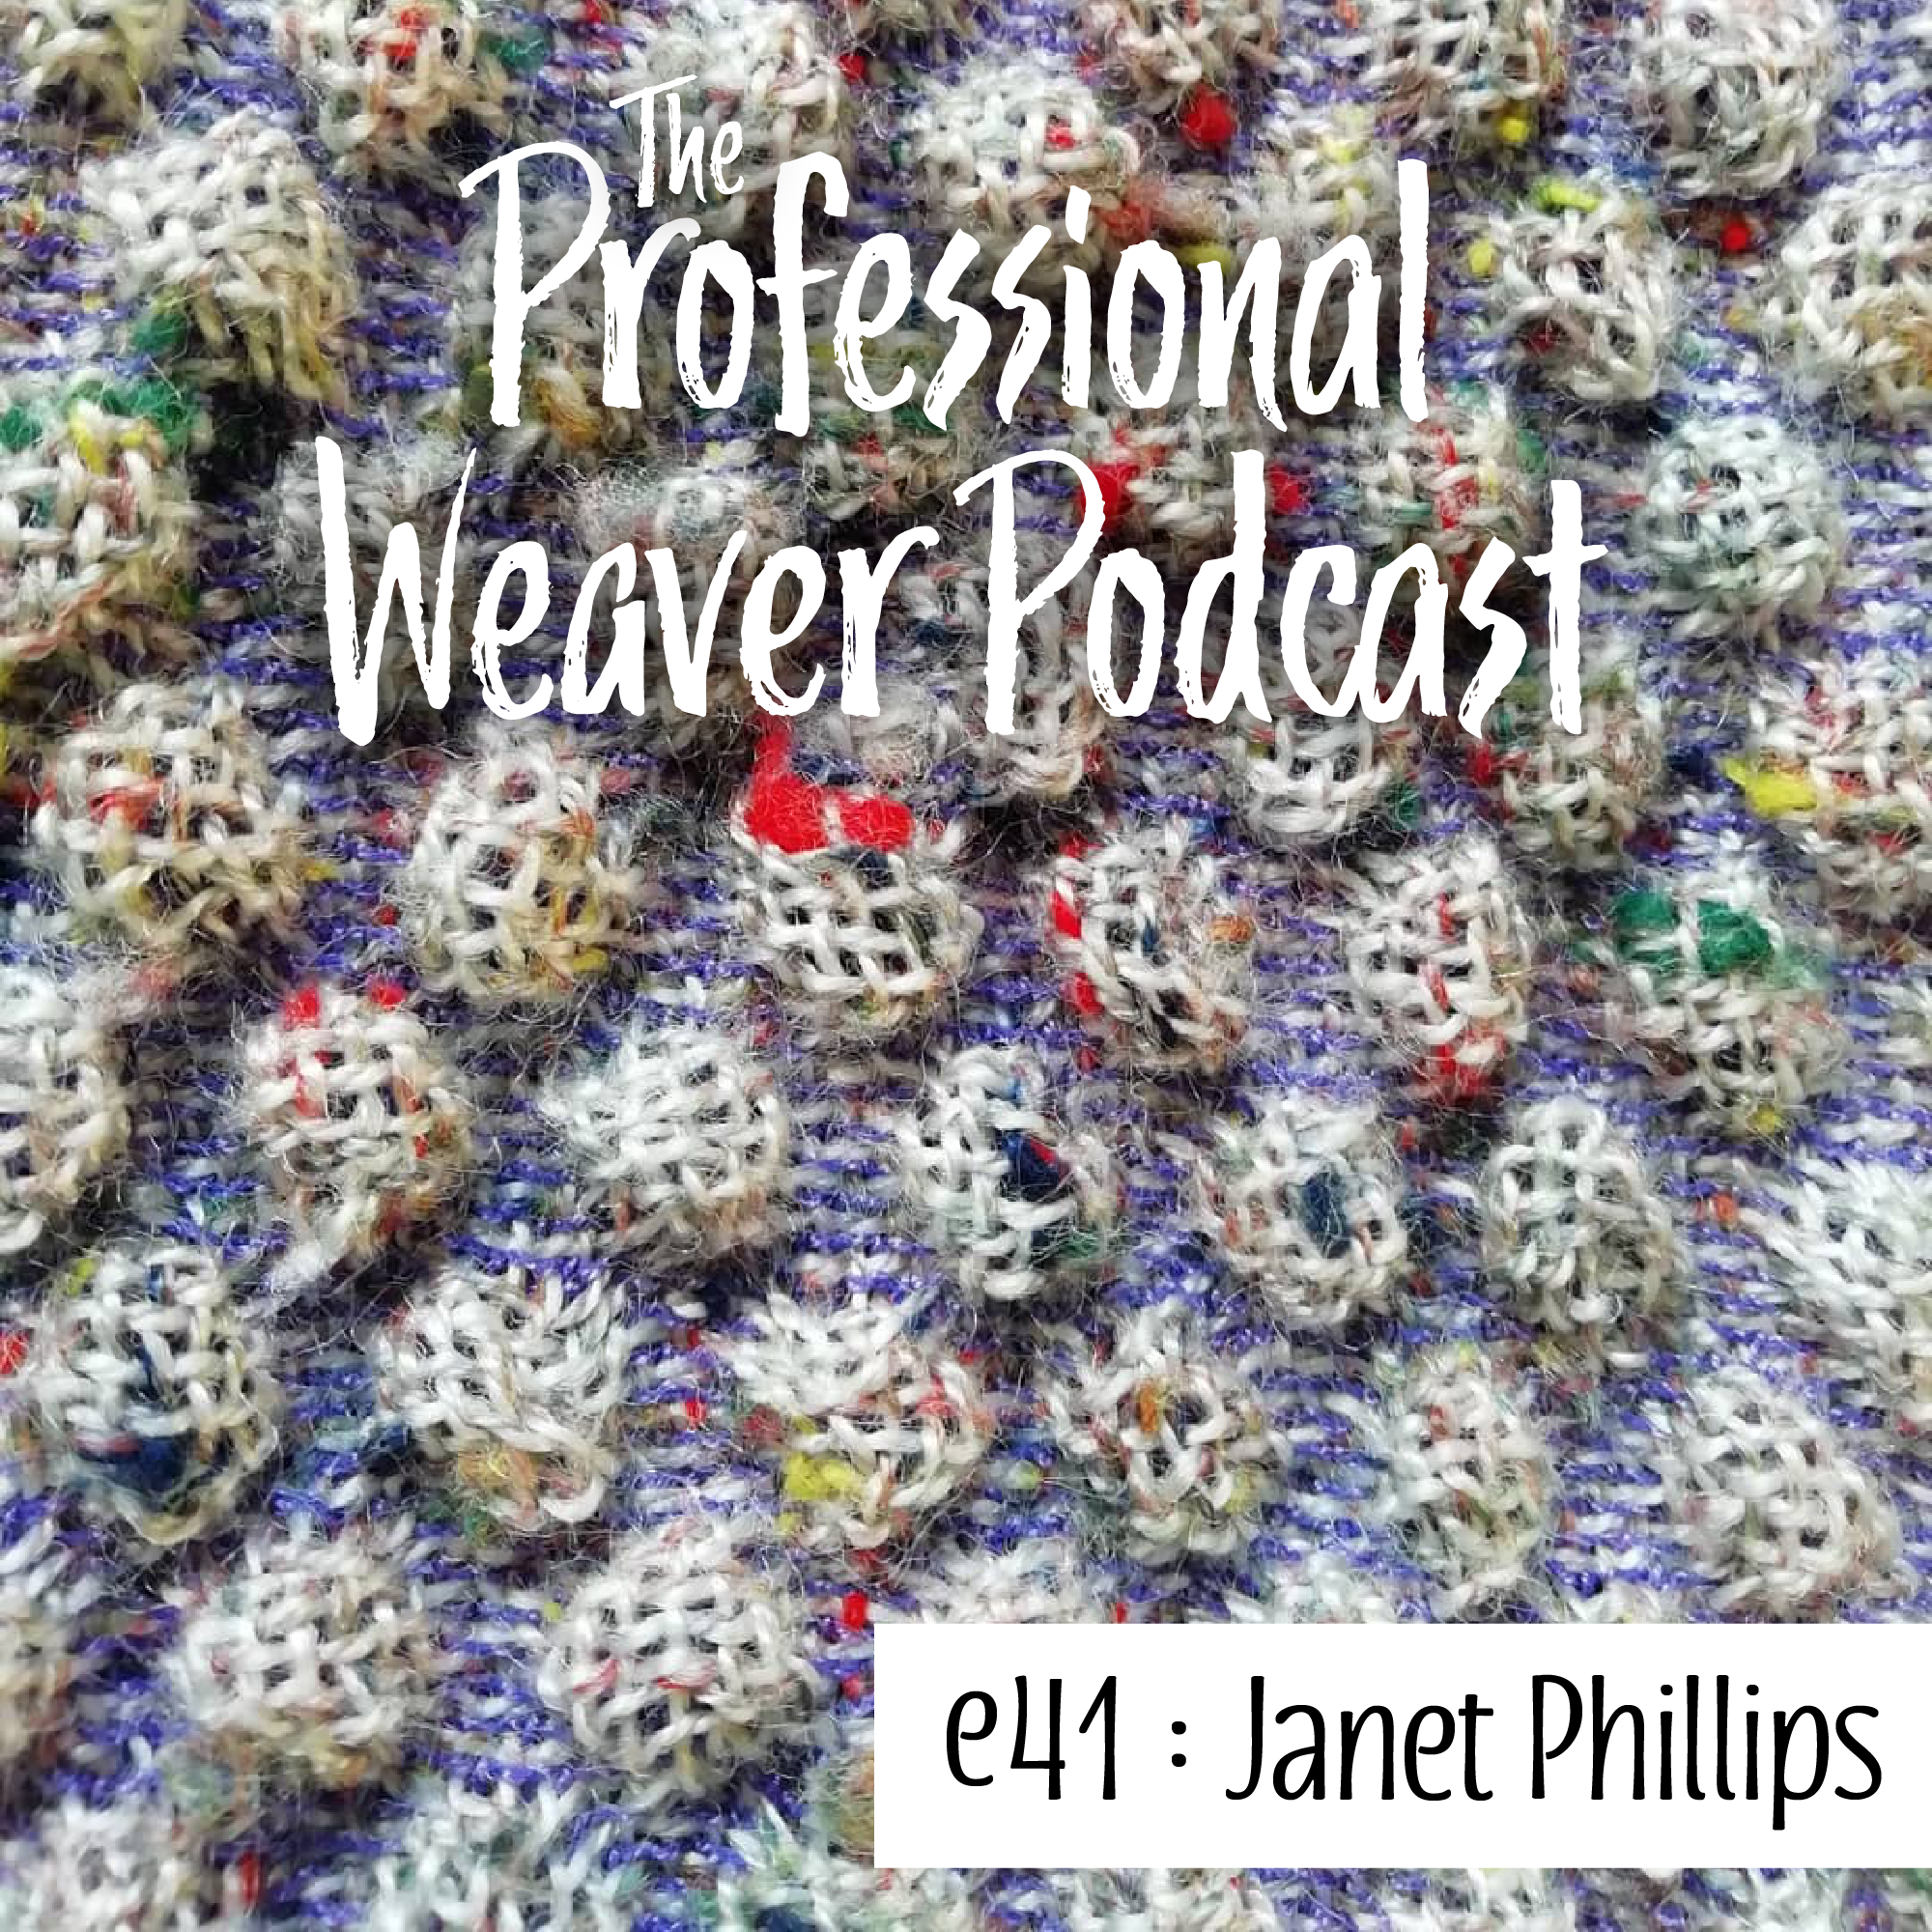 S2E11 : Janet Phillips on becoming a weaver, teaching woven design, the importance of sampling to understand structure, and more